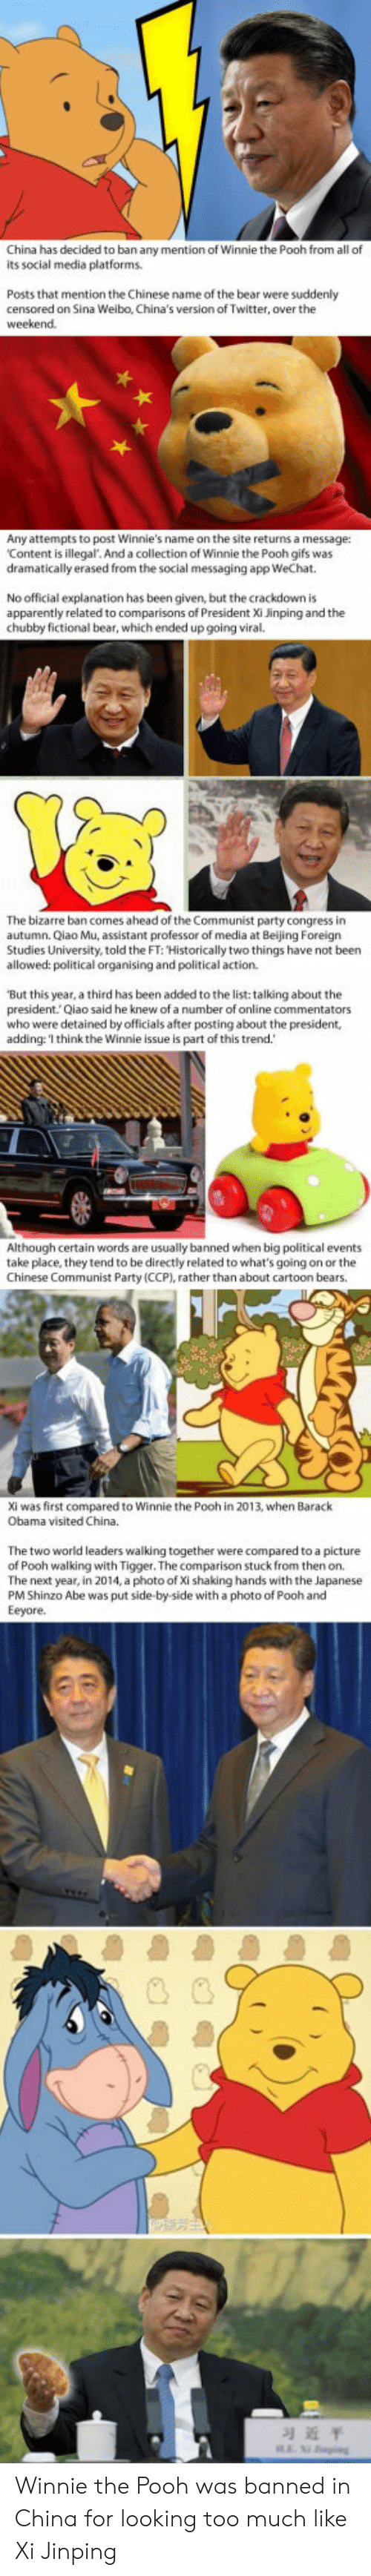 Apparently, Beijing, and Obama: China has decided to ban any mention of Winnie the Pooh from all of  its social media platforms  Posts that mention the Chinese name of the bear were suddenly  censored on Sina Weibo, China's version of Twitter, over the  Any attempts to post Winnie's name on the site returns a message:  Content is illegal. And a collection of Winnie the Pooh gifs was  dramatically erased from the social messaging app WeChat  No official explanation has been given, but the crackdown is  apparently related to comparisons of President Xi Jinping and the  chubby fictional bear, which ended up going viral.  The bizarre ban comes ahead of the Communist party congress in  autumn. Qiao Mu, assistant professor of media at Beijing Foreign  Studies University, told the FT: Historically two things have not been  allowed: political organising and political action  'But this year, a third has been added to the list: talking about the  president.Qiao said he knew of a number of online commentators  who were detained by officials after posting about the president,  adding:'I think the Winnie issue is part of this trend.  Although certain words are usually banned when big political events  take place, they tend to be directly related to what's going on or the  Chinese Communist Party (CCP), rather than about cartoon bears.  Xi was first compared to Winnie the Pooh in 2013, when Barack  Obama visited China.  The two world leaders walking together were compared to a picture  of Pooh walking with Tigger. The comparison stuck from then on.  The next year, in 2014, a photo of Xi shaking hands with the Japanese  PM Shinzo Abe was put side-by-side with a photo of Pooh and  Eeyore.  习近平 Winnie the Pooh was banned in China for looking too much like Xi Jinping